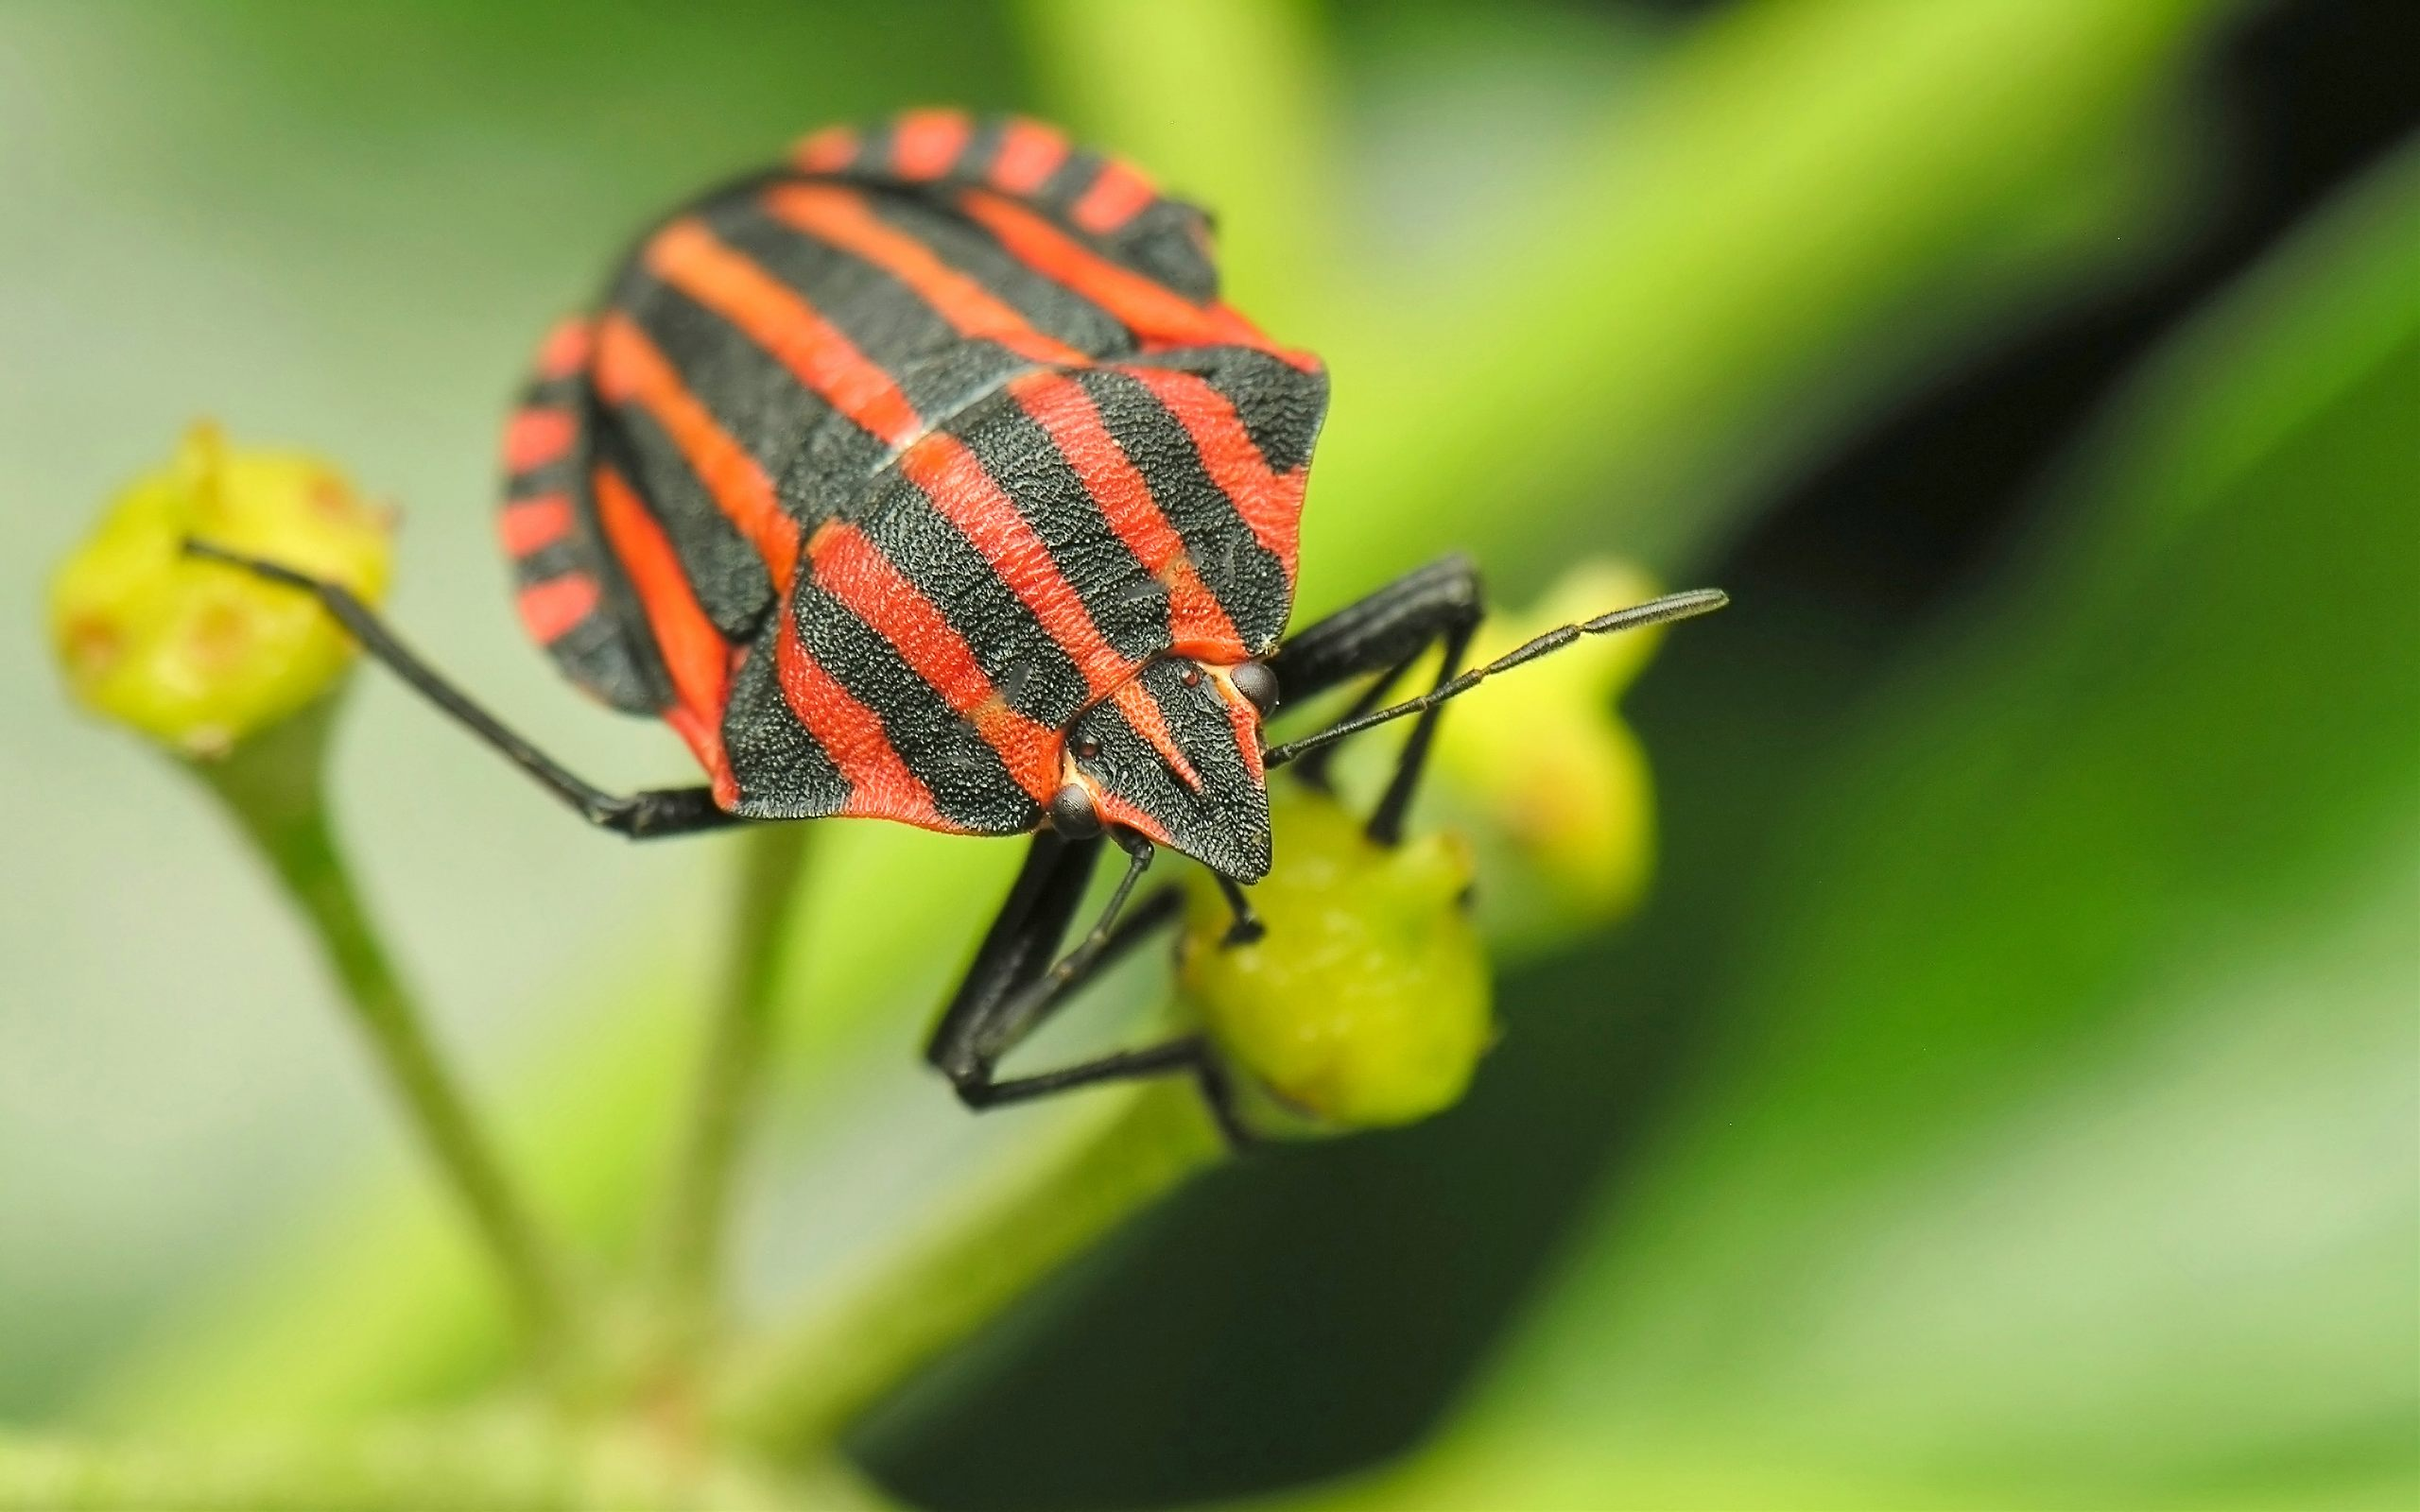 3d Dragon Eye Wallpaper Insect With Orange And Black Striped